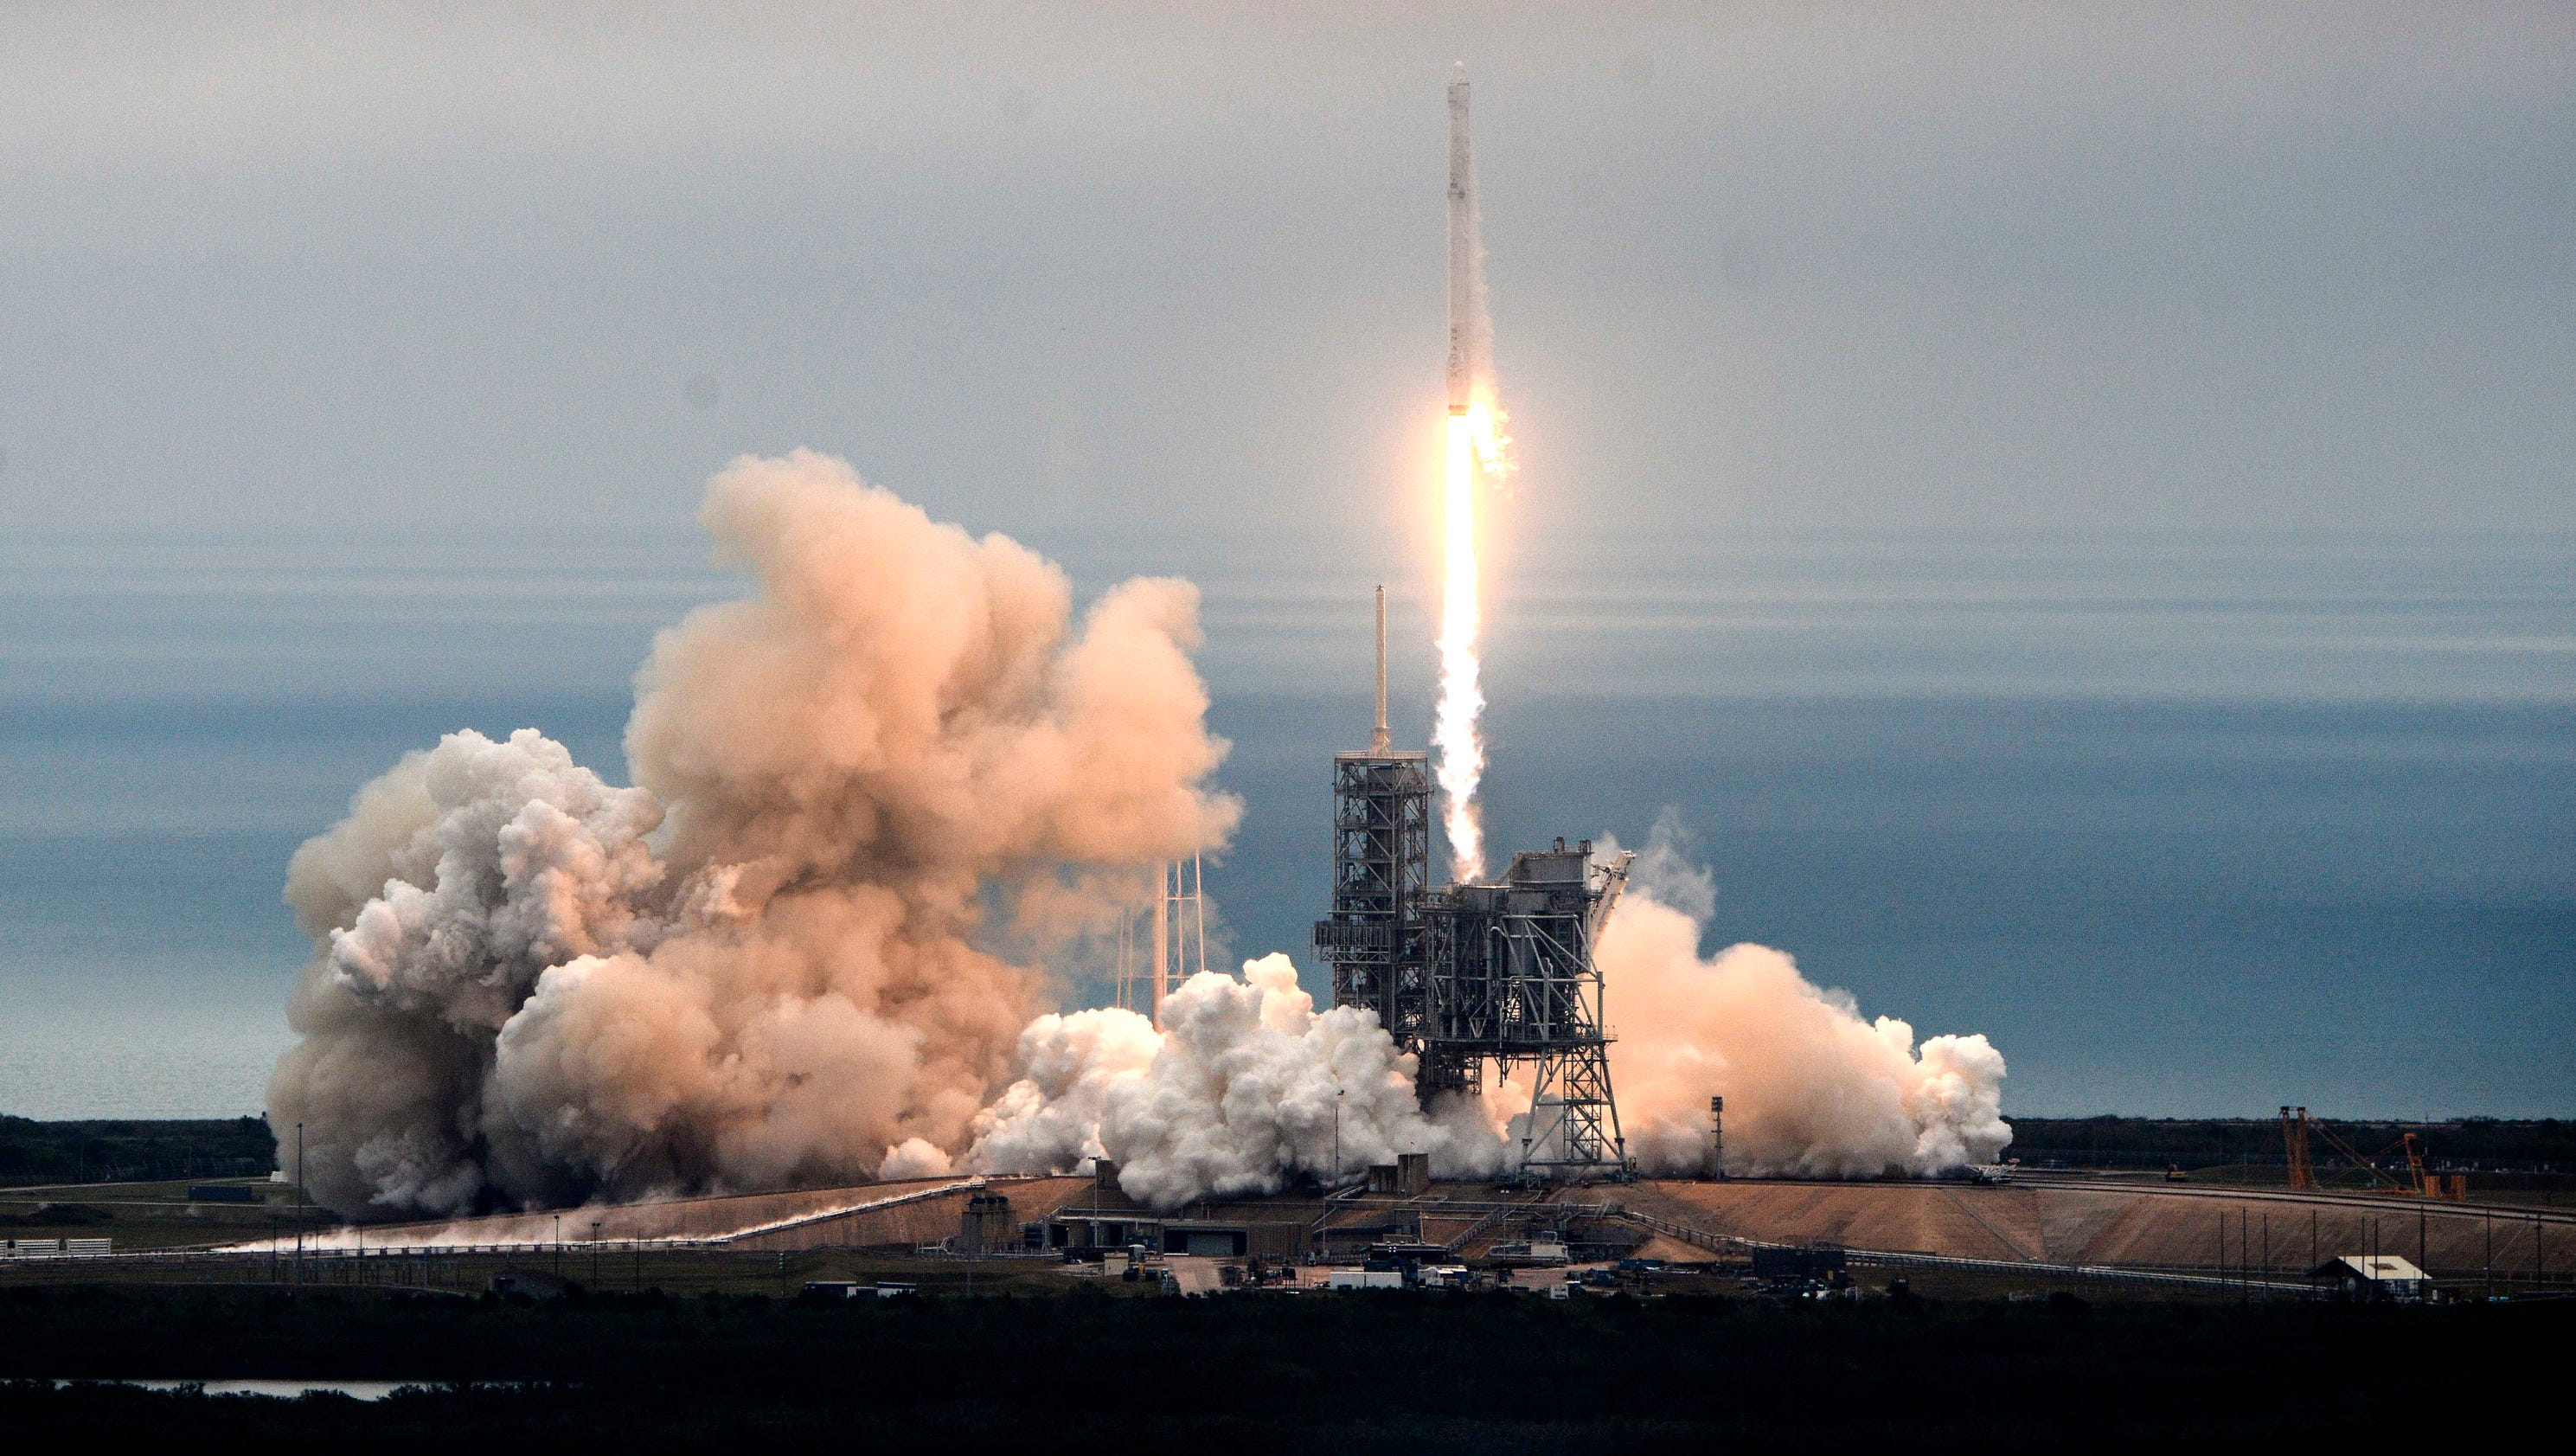 falcon 9 launch - photo #32